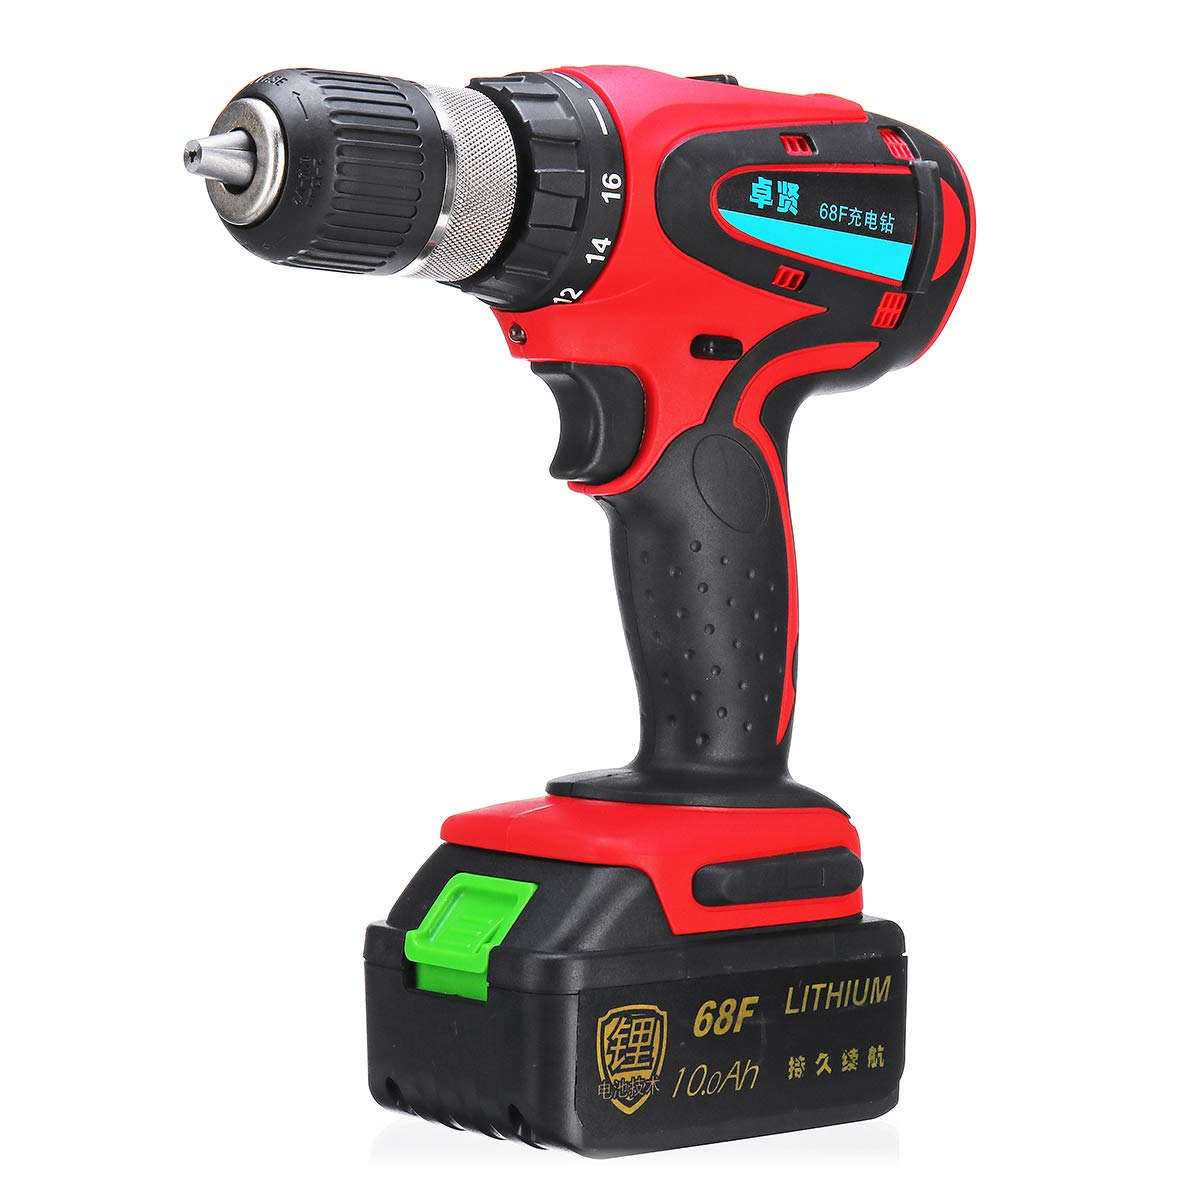 68V 1000mAh Cordless Rechargeable Electric Drill 2 Speed Heavy Duty Torque Power Drills OlogyMart OlogyMart1403940